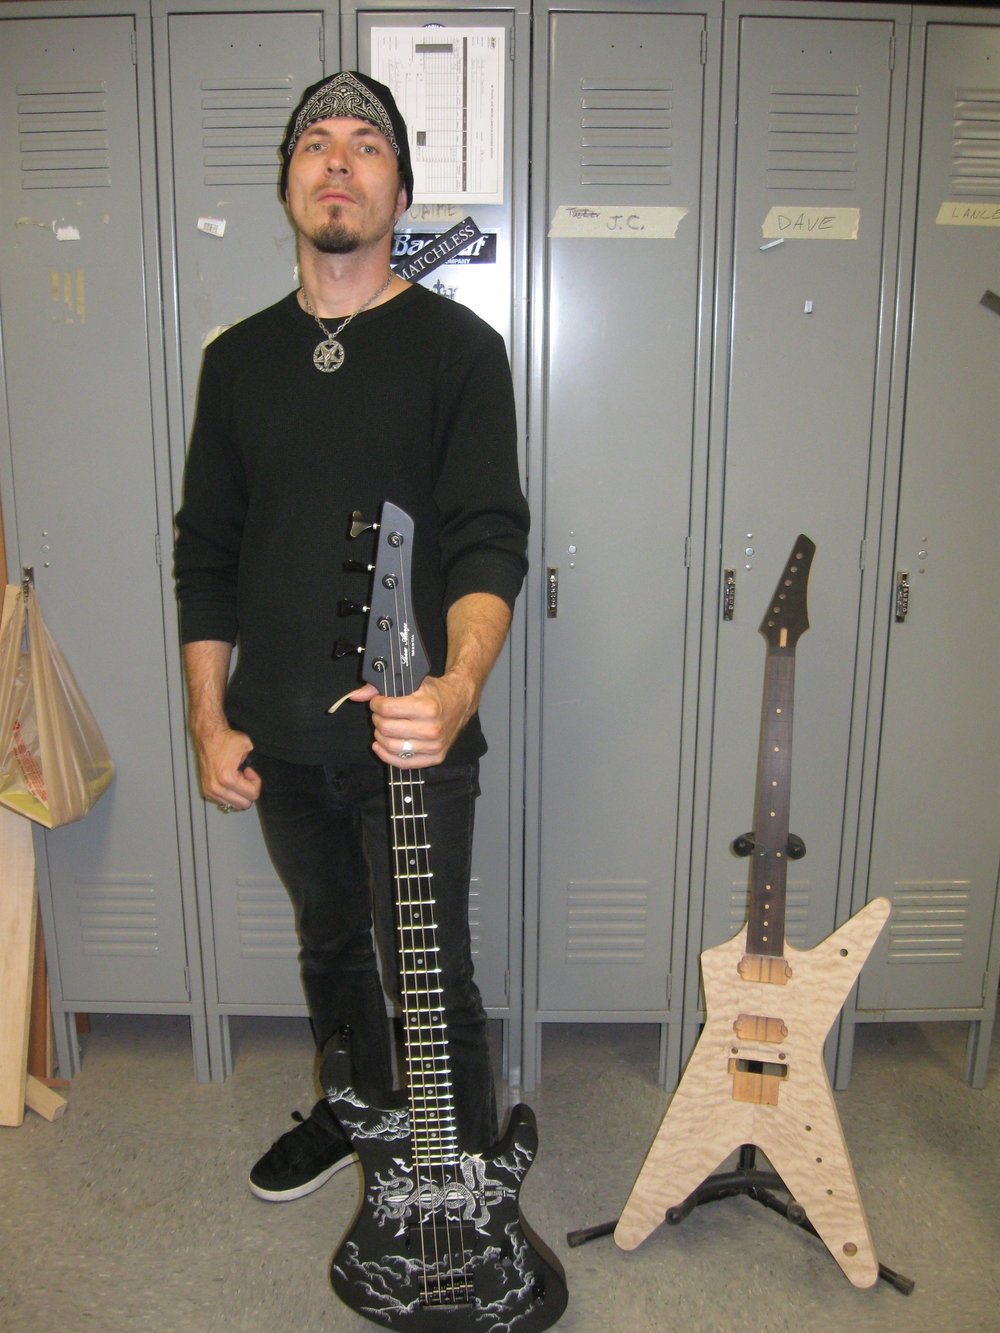 Menno Verbaten with custom bass